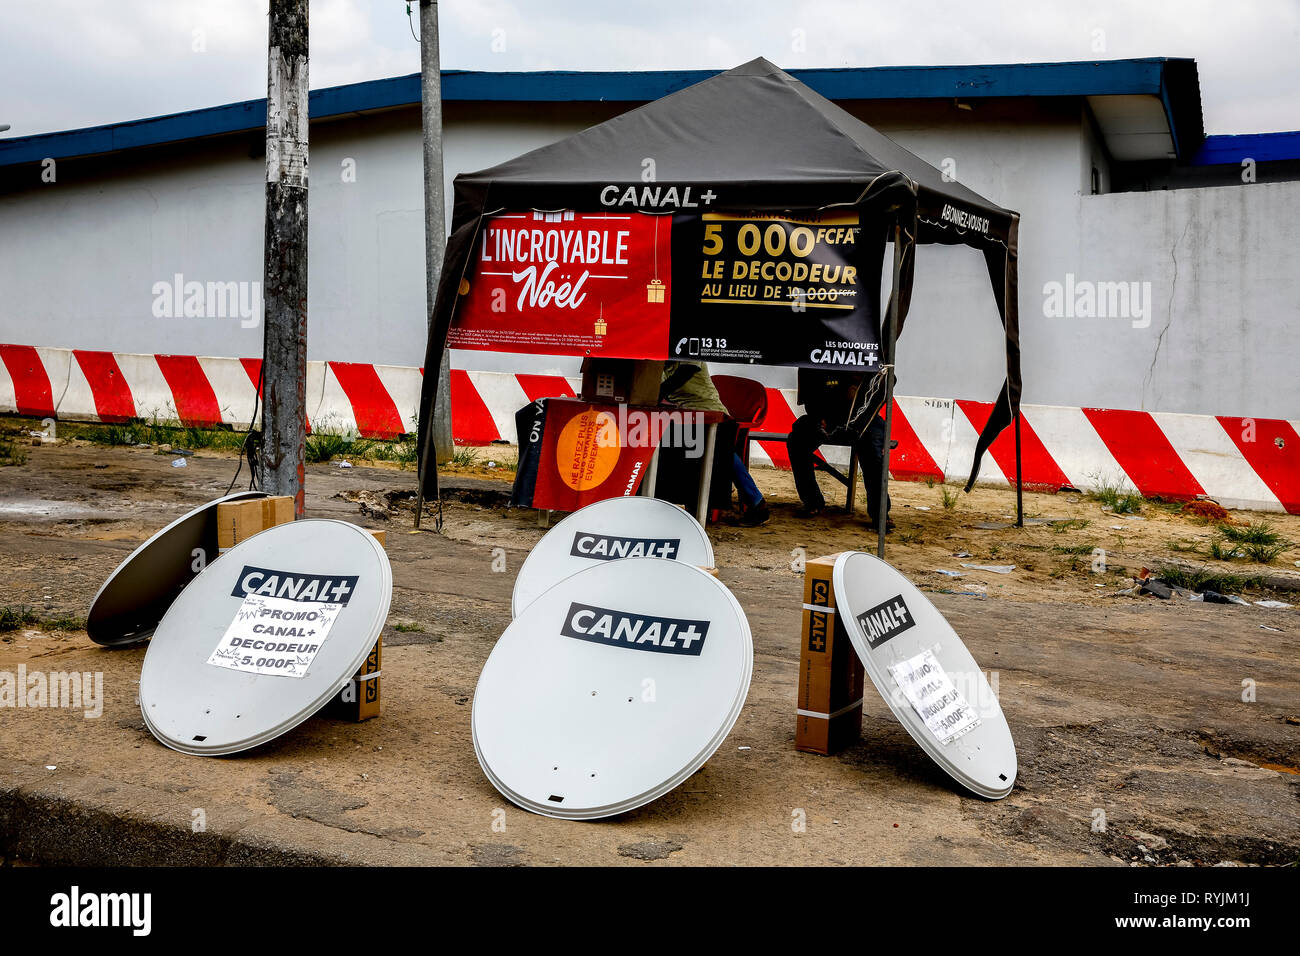 Pay TV dishes for sale in Abidjan, Ivory Coast - Stock Image